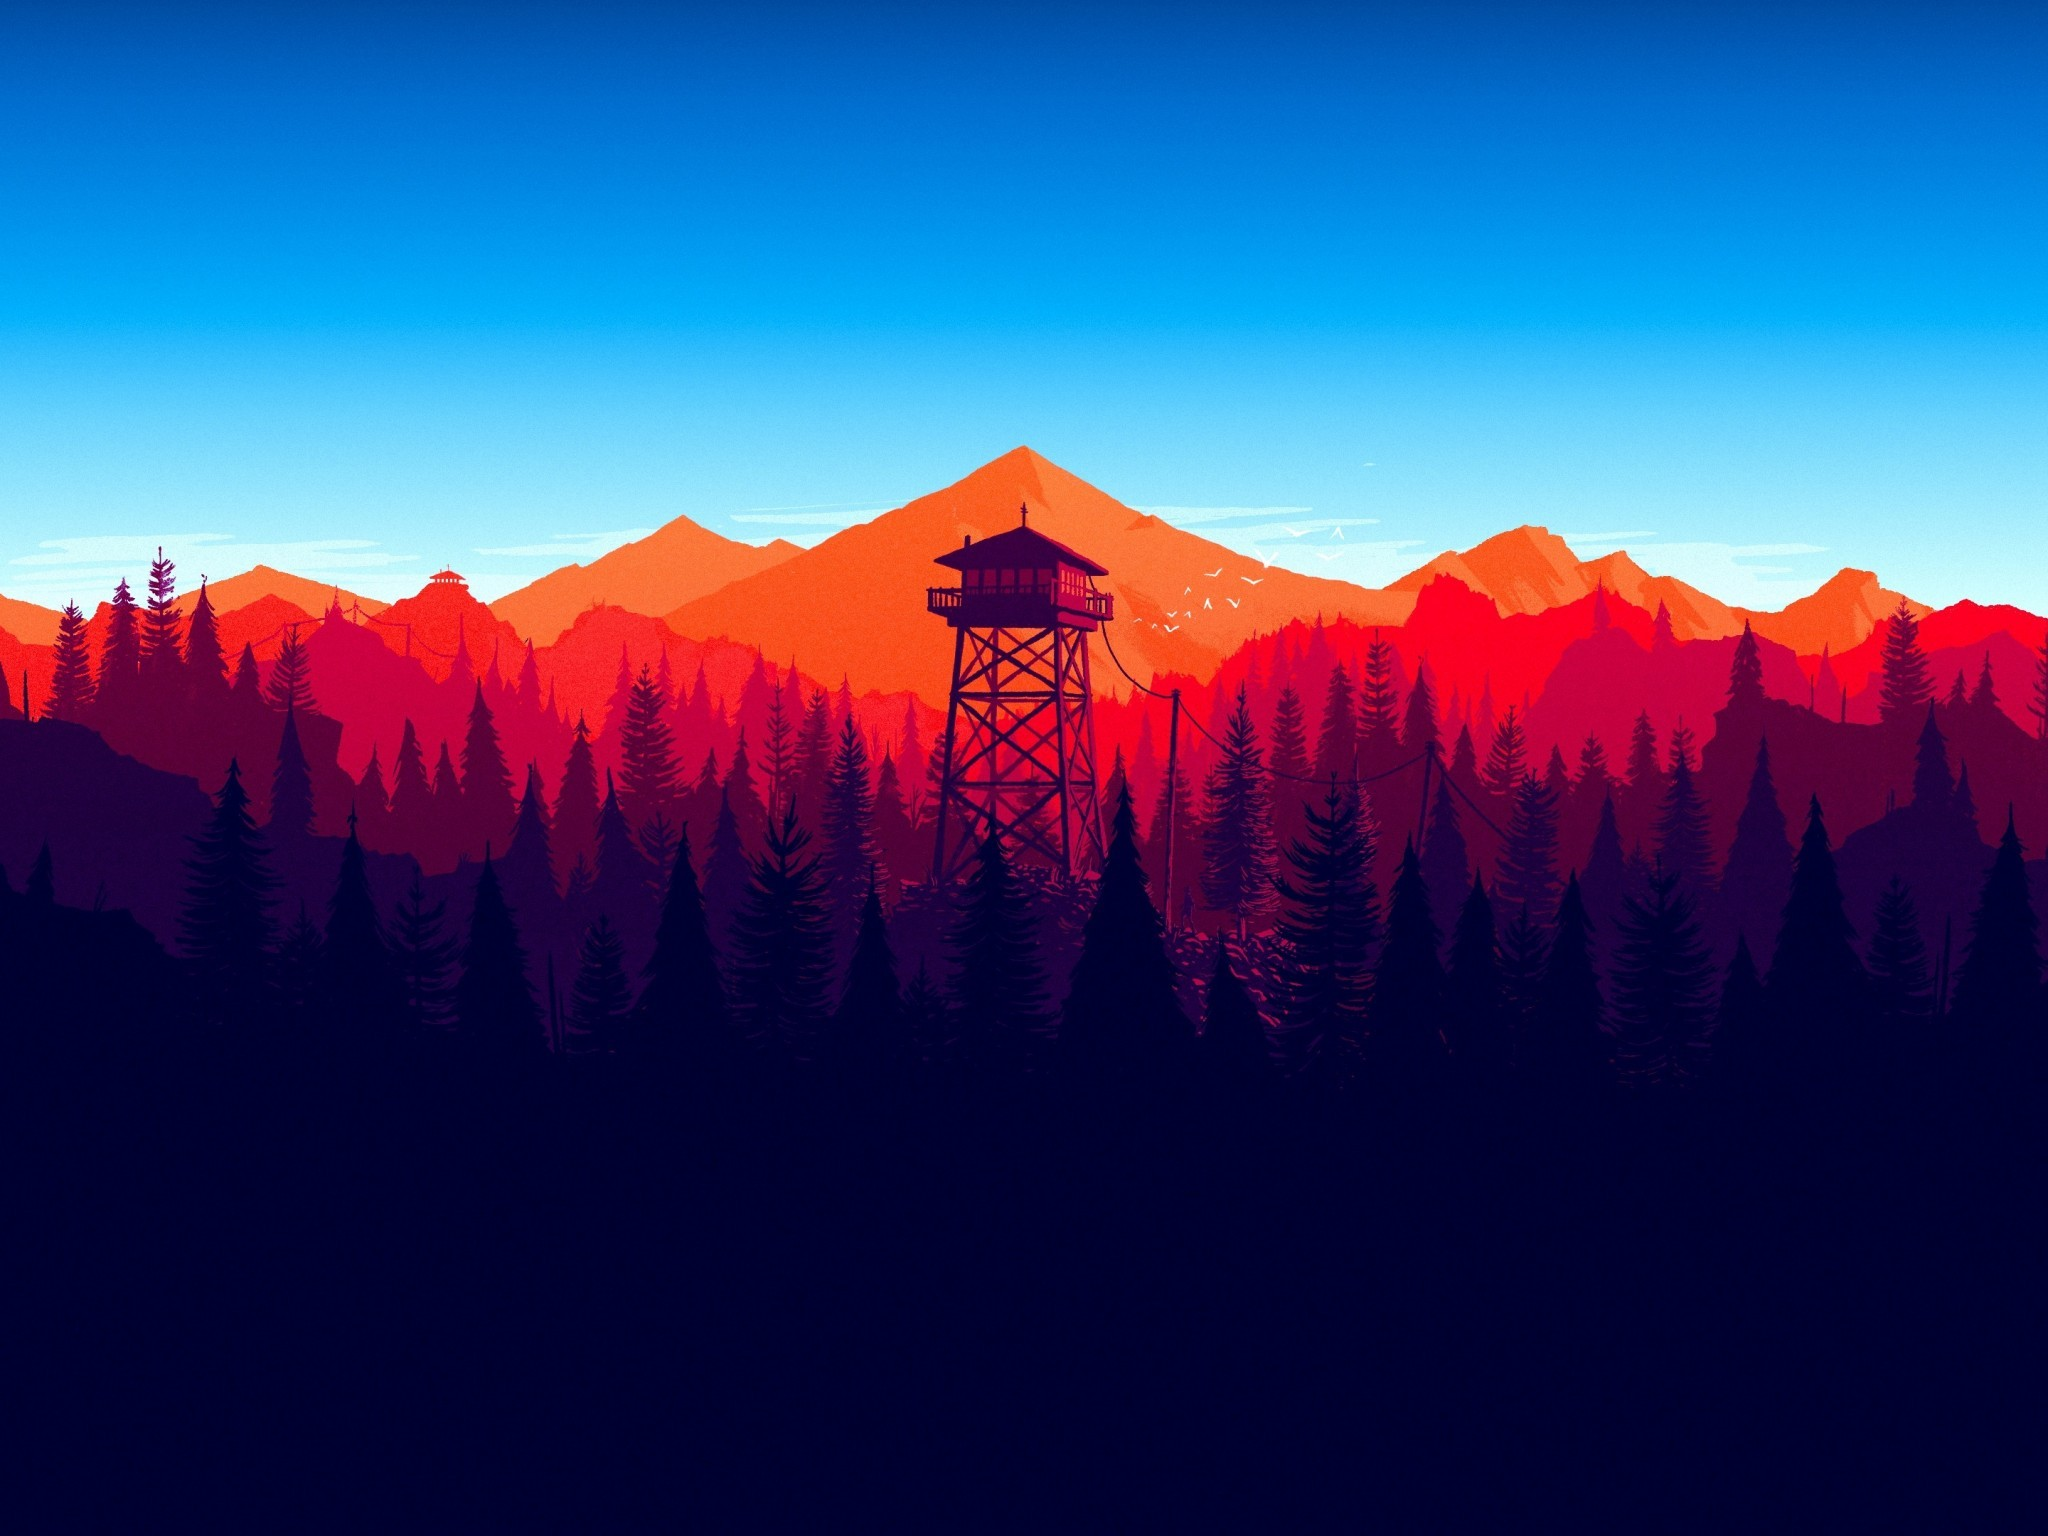 Download 2048x1536 Firewatch Forest Landscape In game 2048x1536